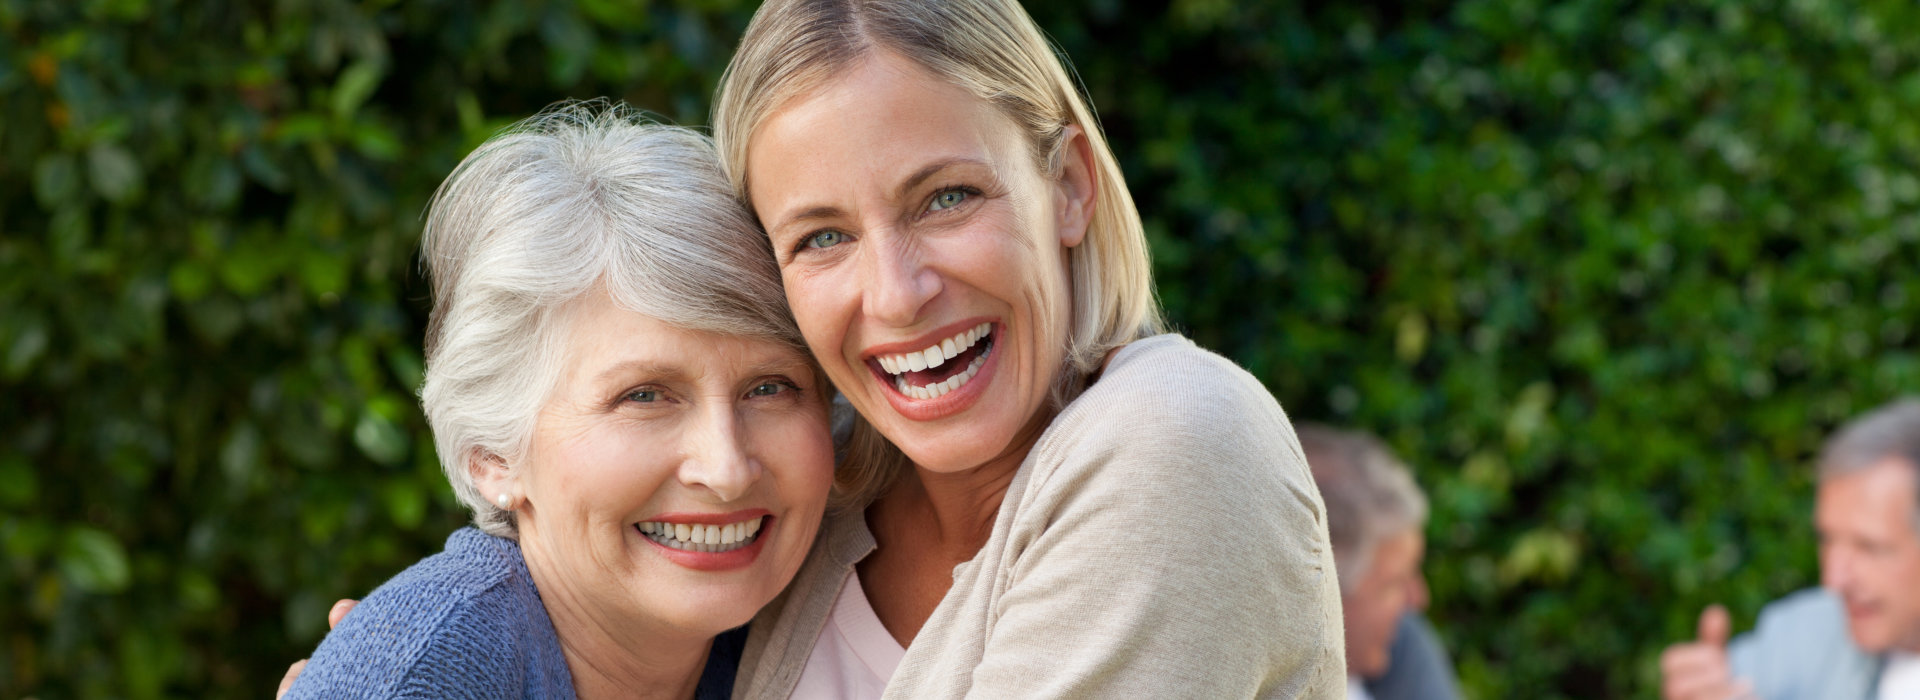 caregiver and elder laughing